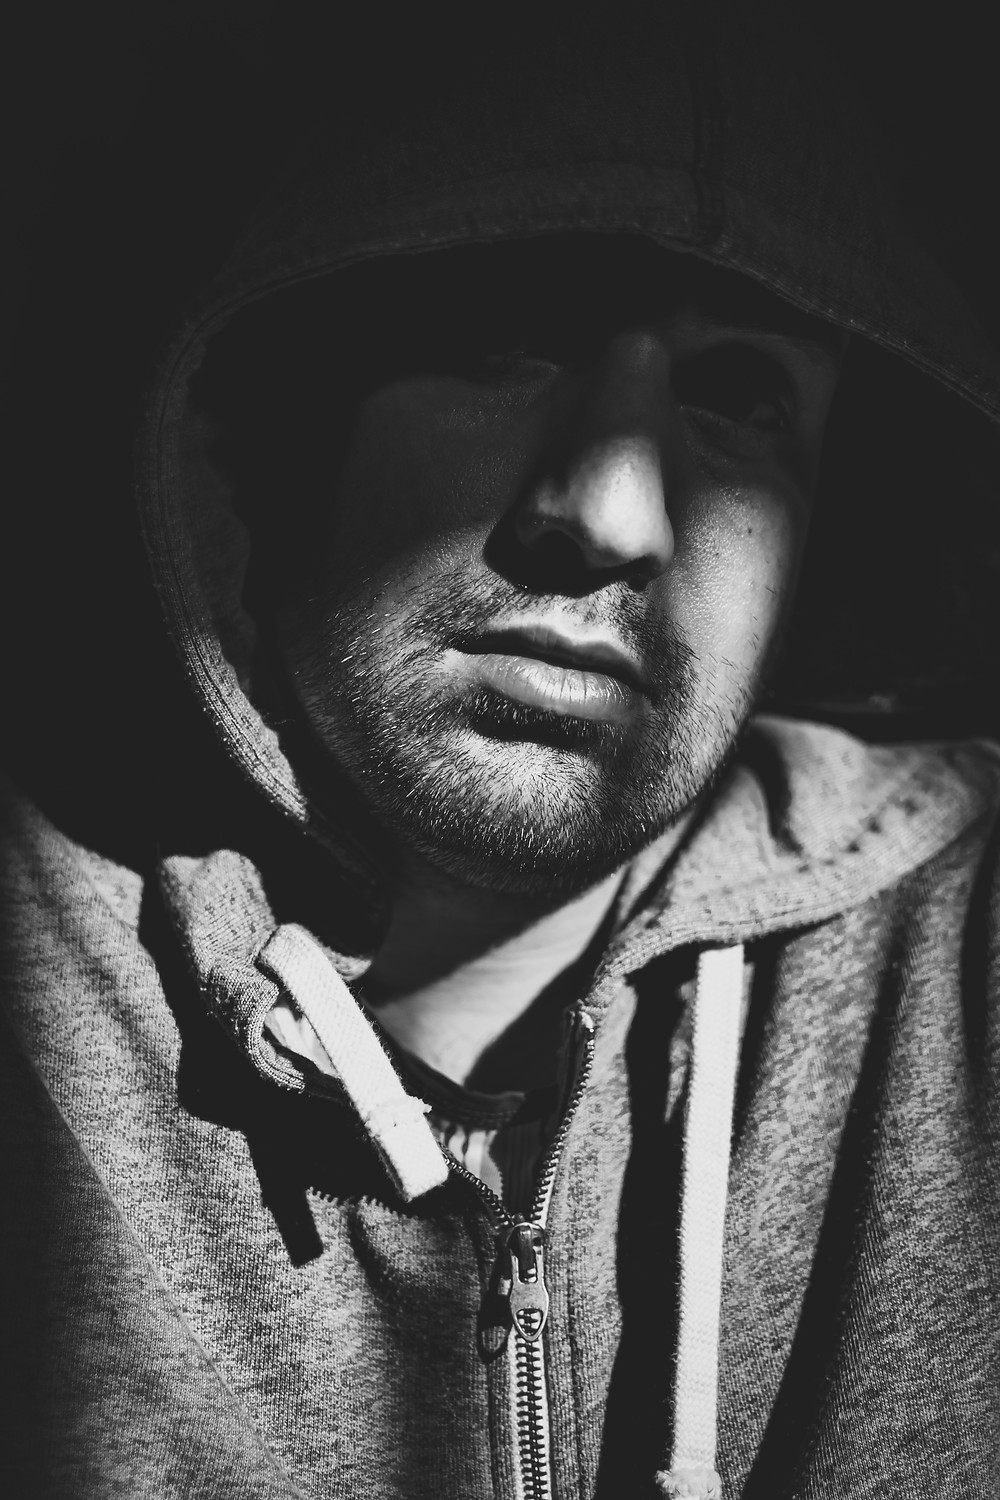 Man in hoodie, partially hidden in shadows, with stubble on face